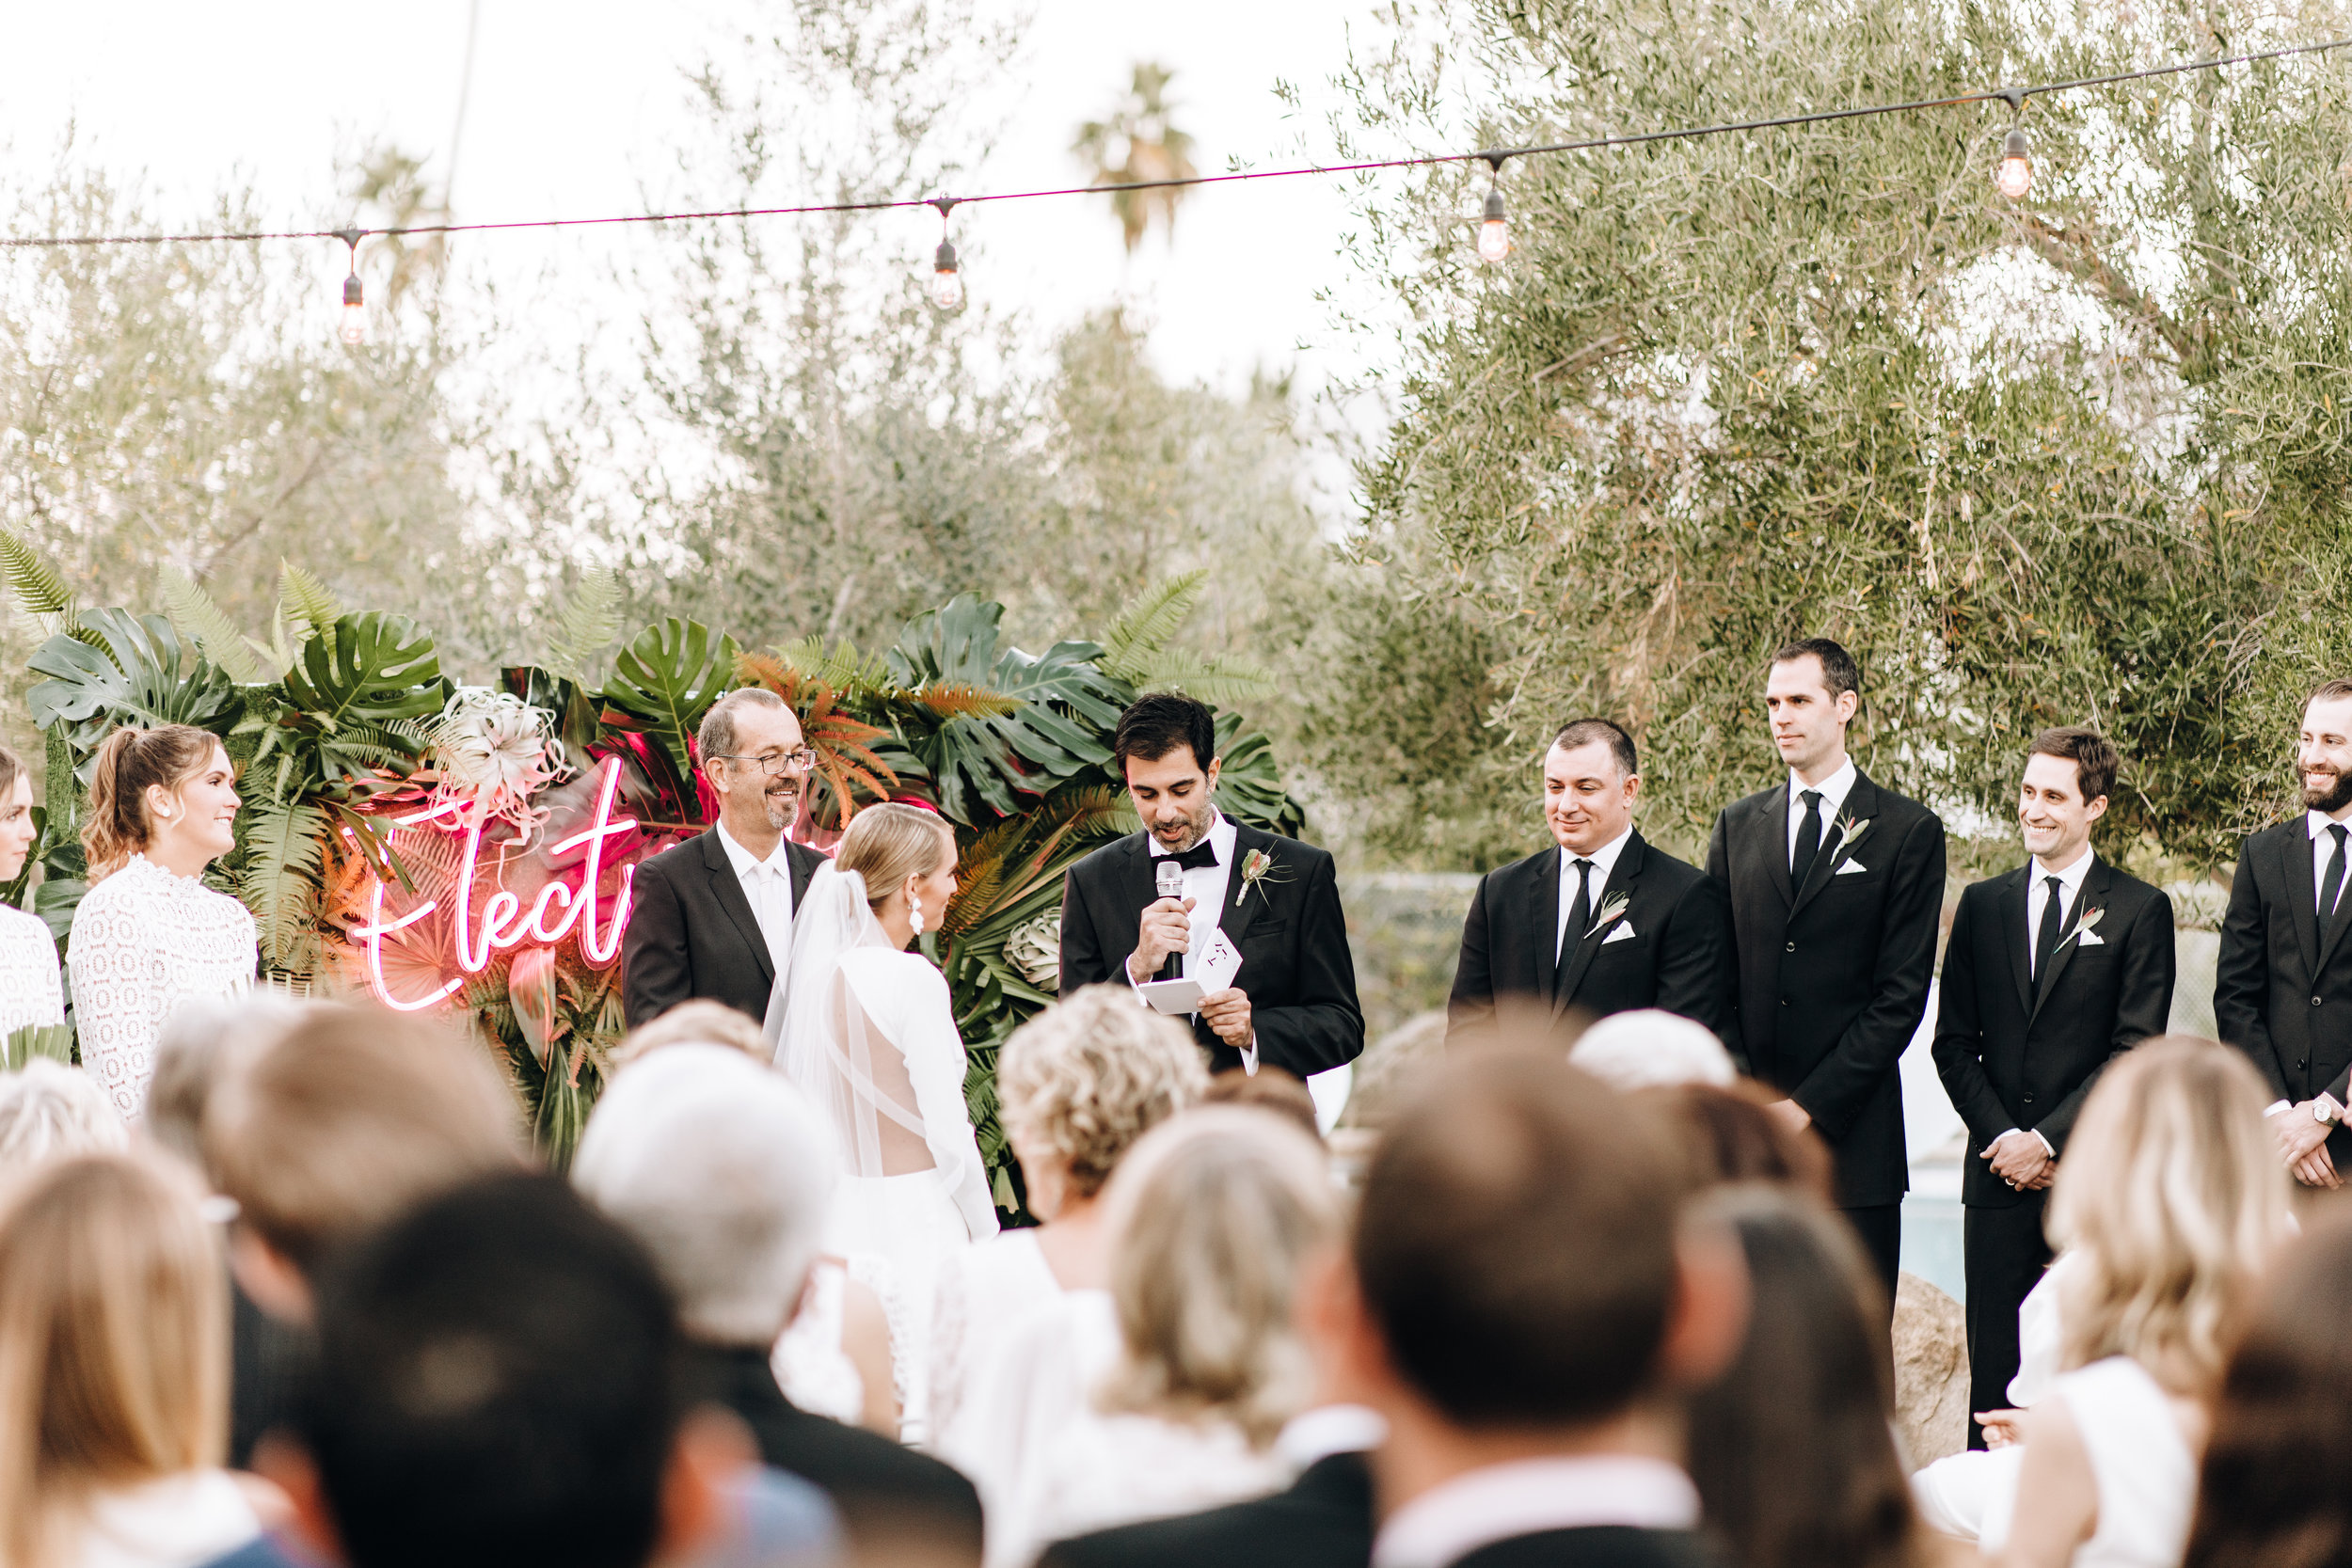 Palm Springs wedding photographer, SoCal wedding photographer, Southern California wedding photographer, Ace Hotel wedding photographer, PS wedding photographer, Ace Hotel Palm Springs wedding